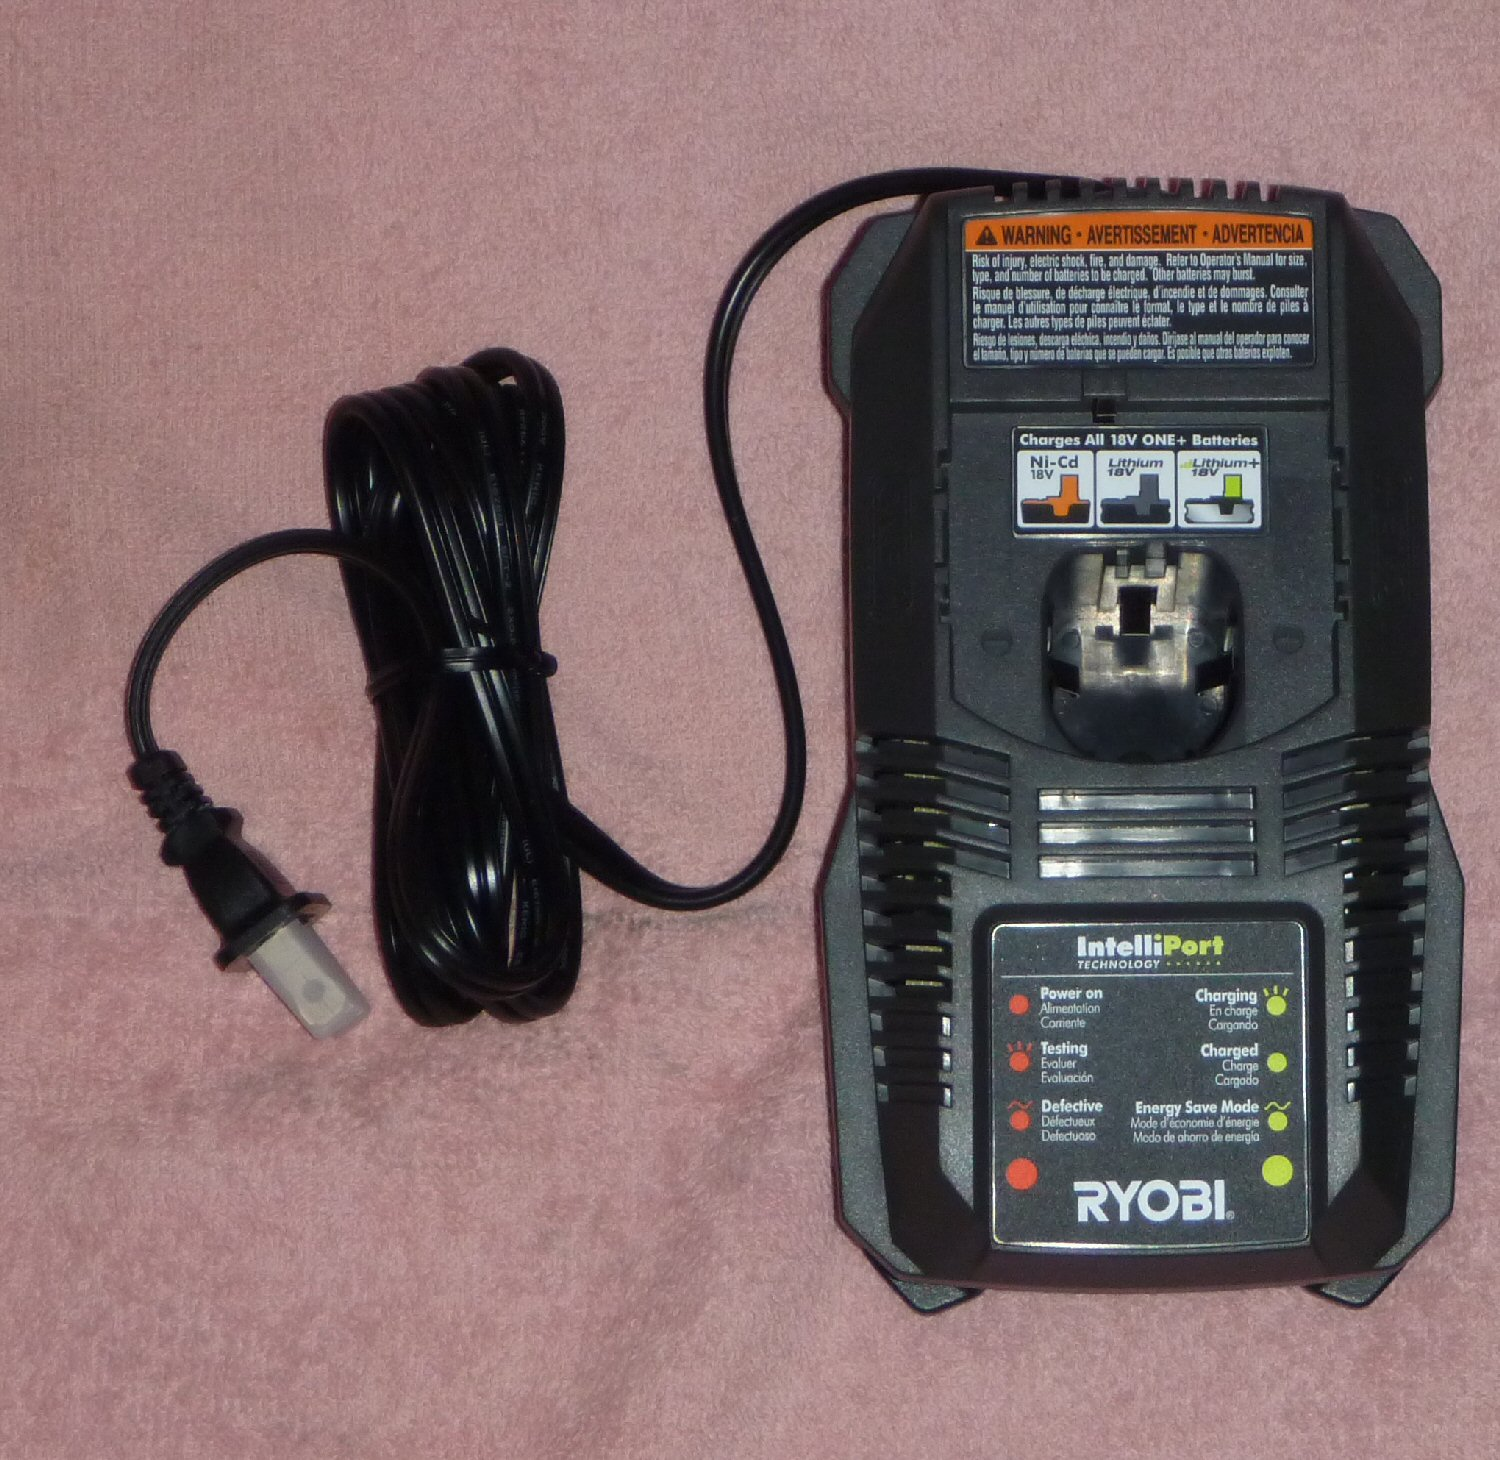 Toolboys Corner Ryobi 18v Chargers Lithium Ion Battery Charger Circuit Usb Schematic Nimh P118 Nickel Cadmium 1 Hour